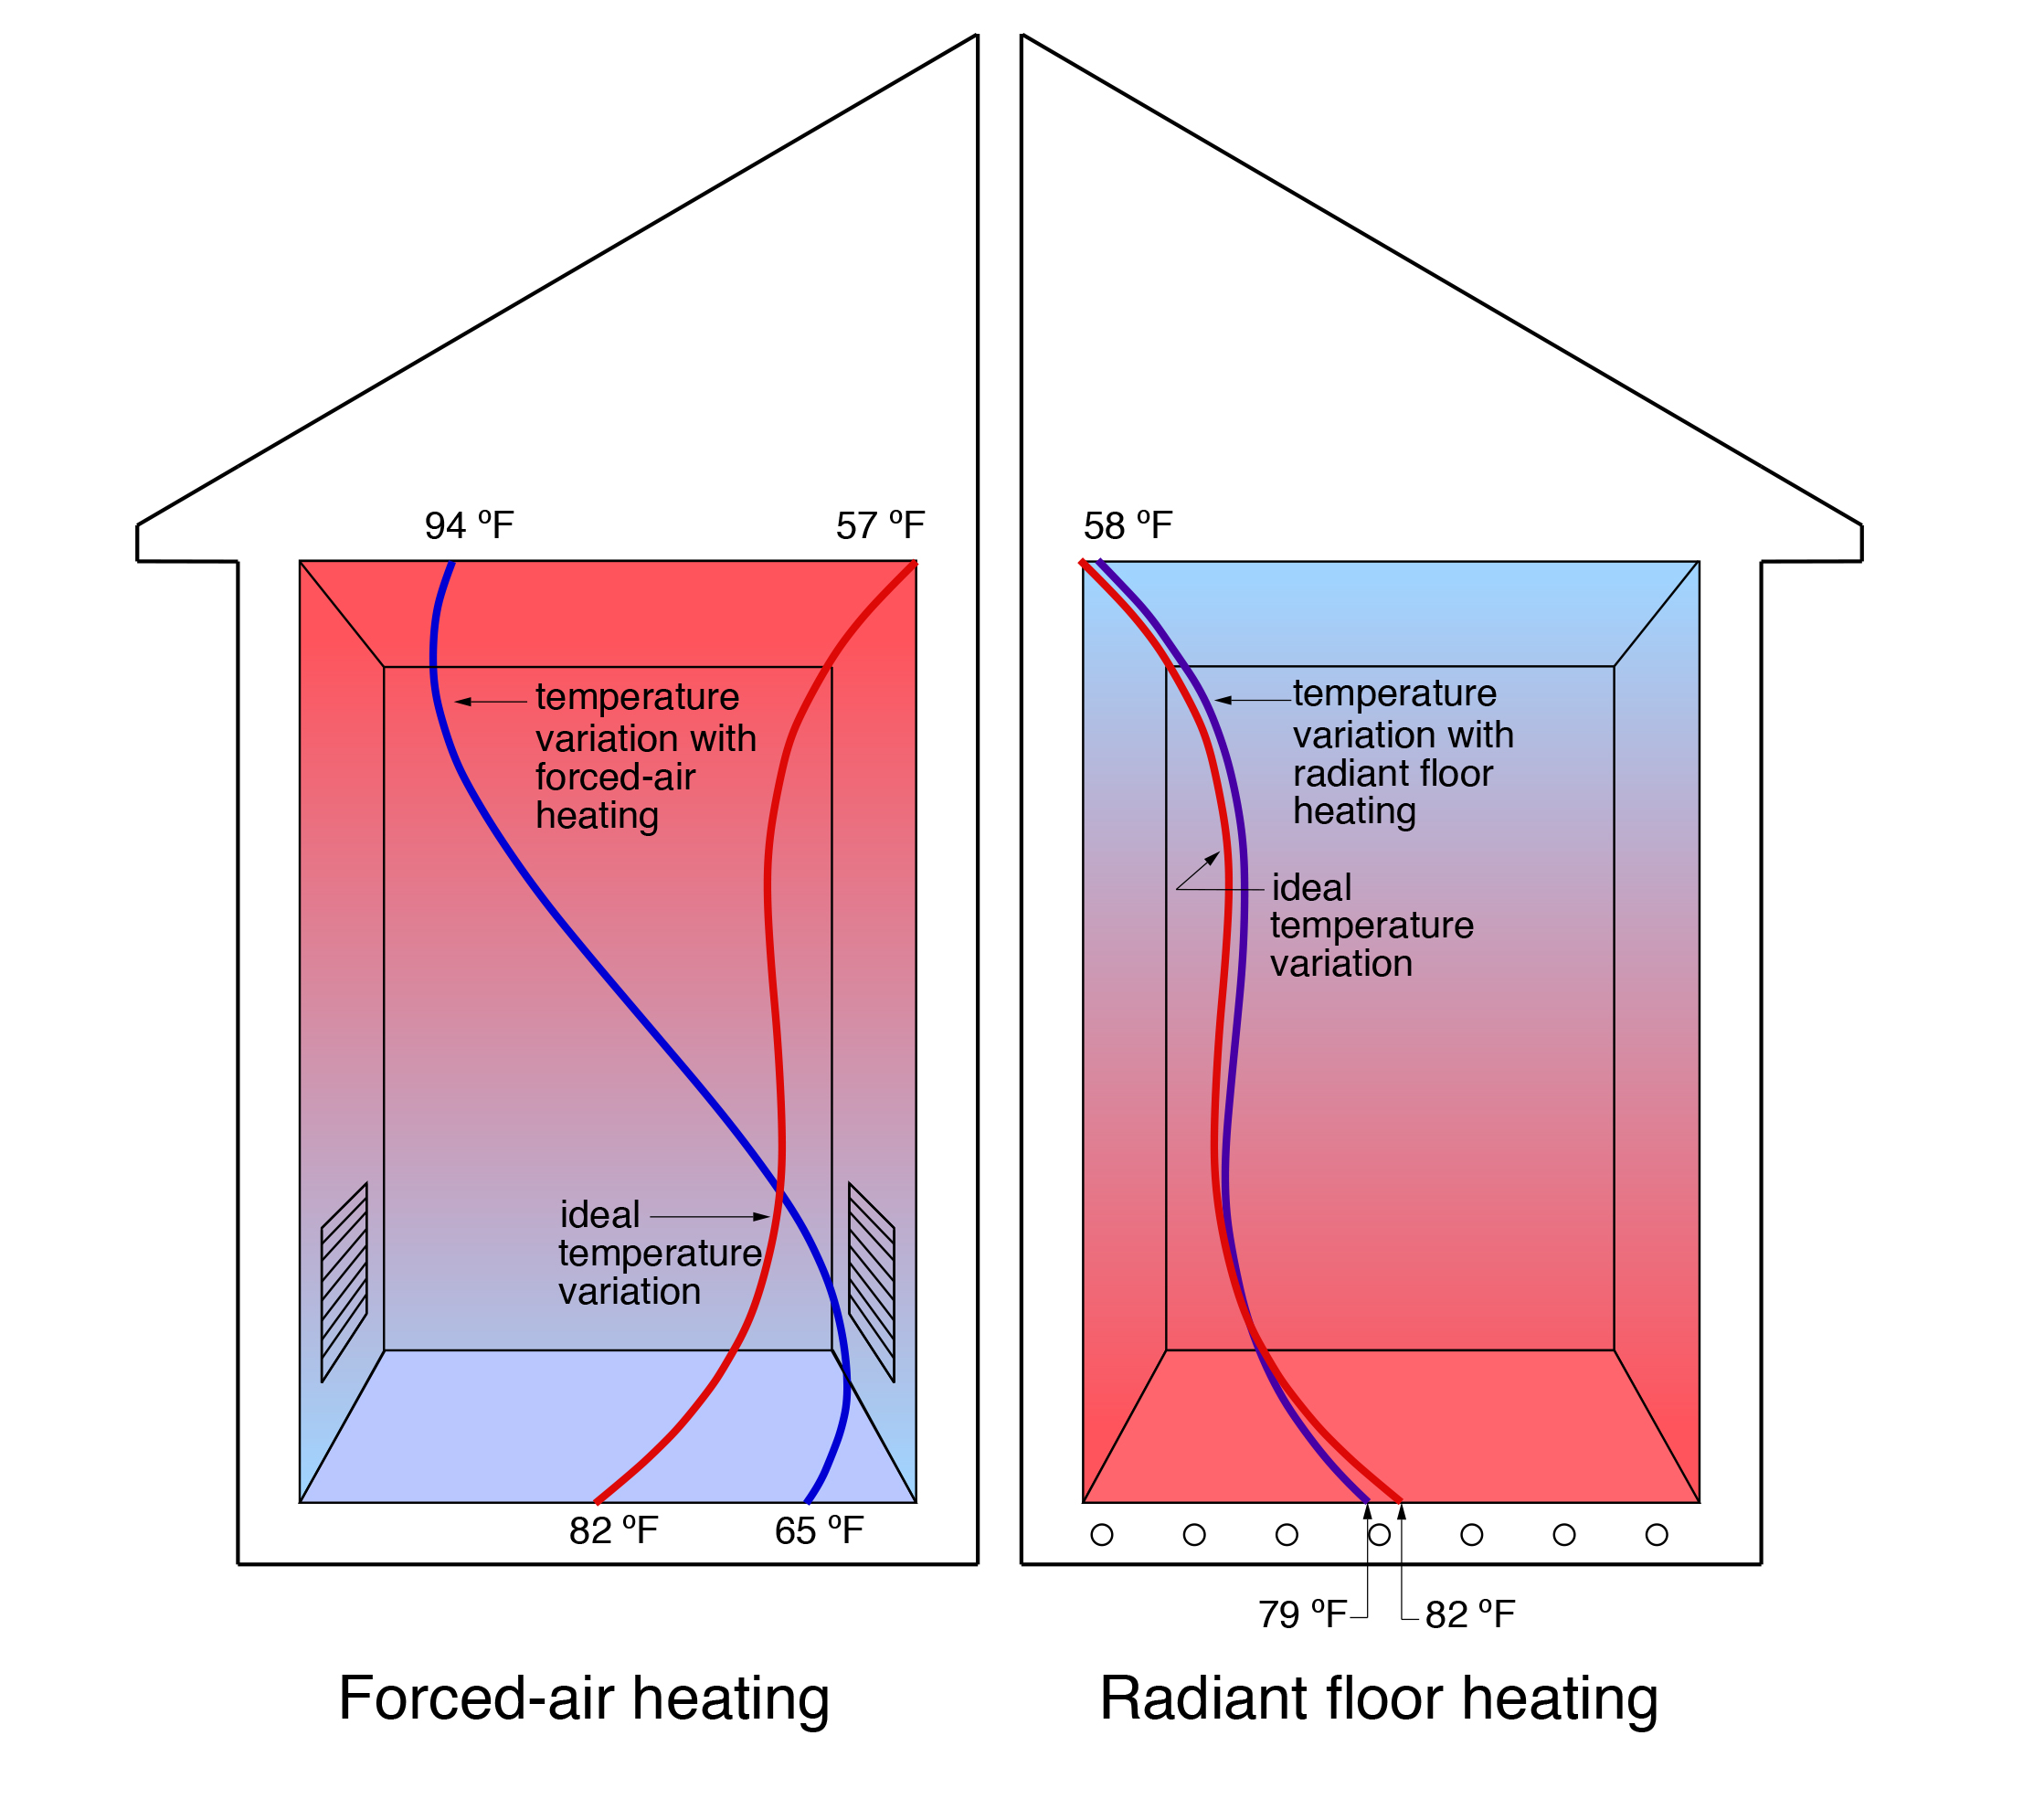 Hydronic Heating Appropriate Designs Wiring Up Baseboard Heater Ideally A Buildings Rate Of Heat Loss Would Not Be Effected By How That Is Replaced Experience However Has Shown Otherwise Identical